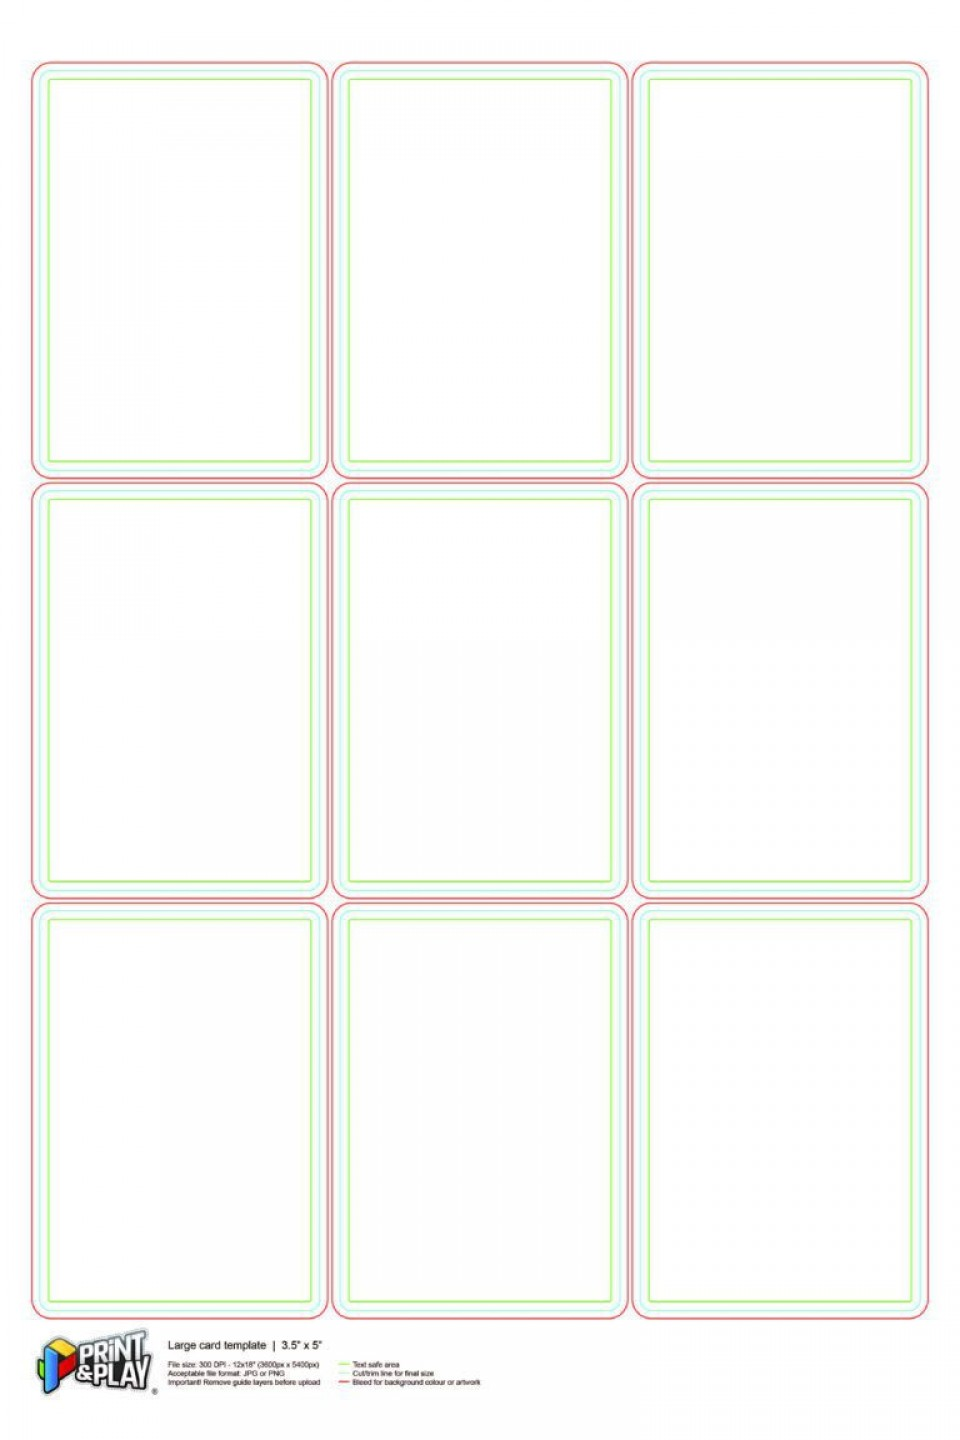 000 Stupendou Playing Card Size Template Idea  Game Standard960